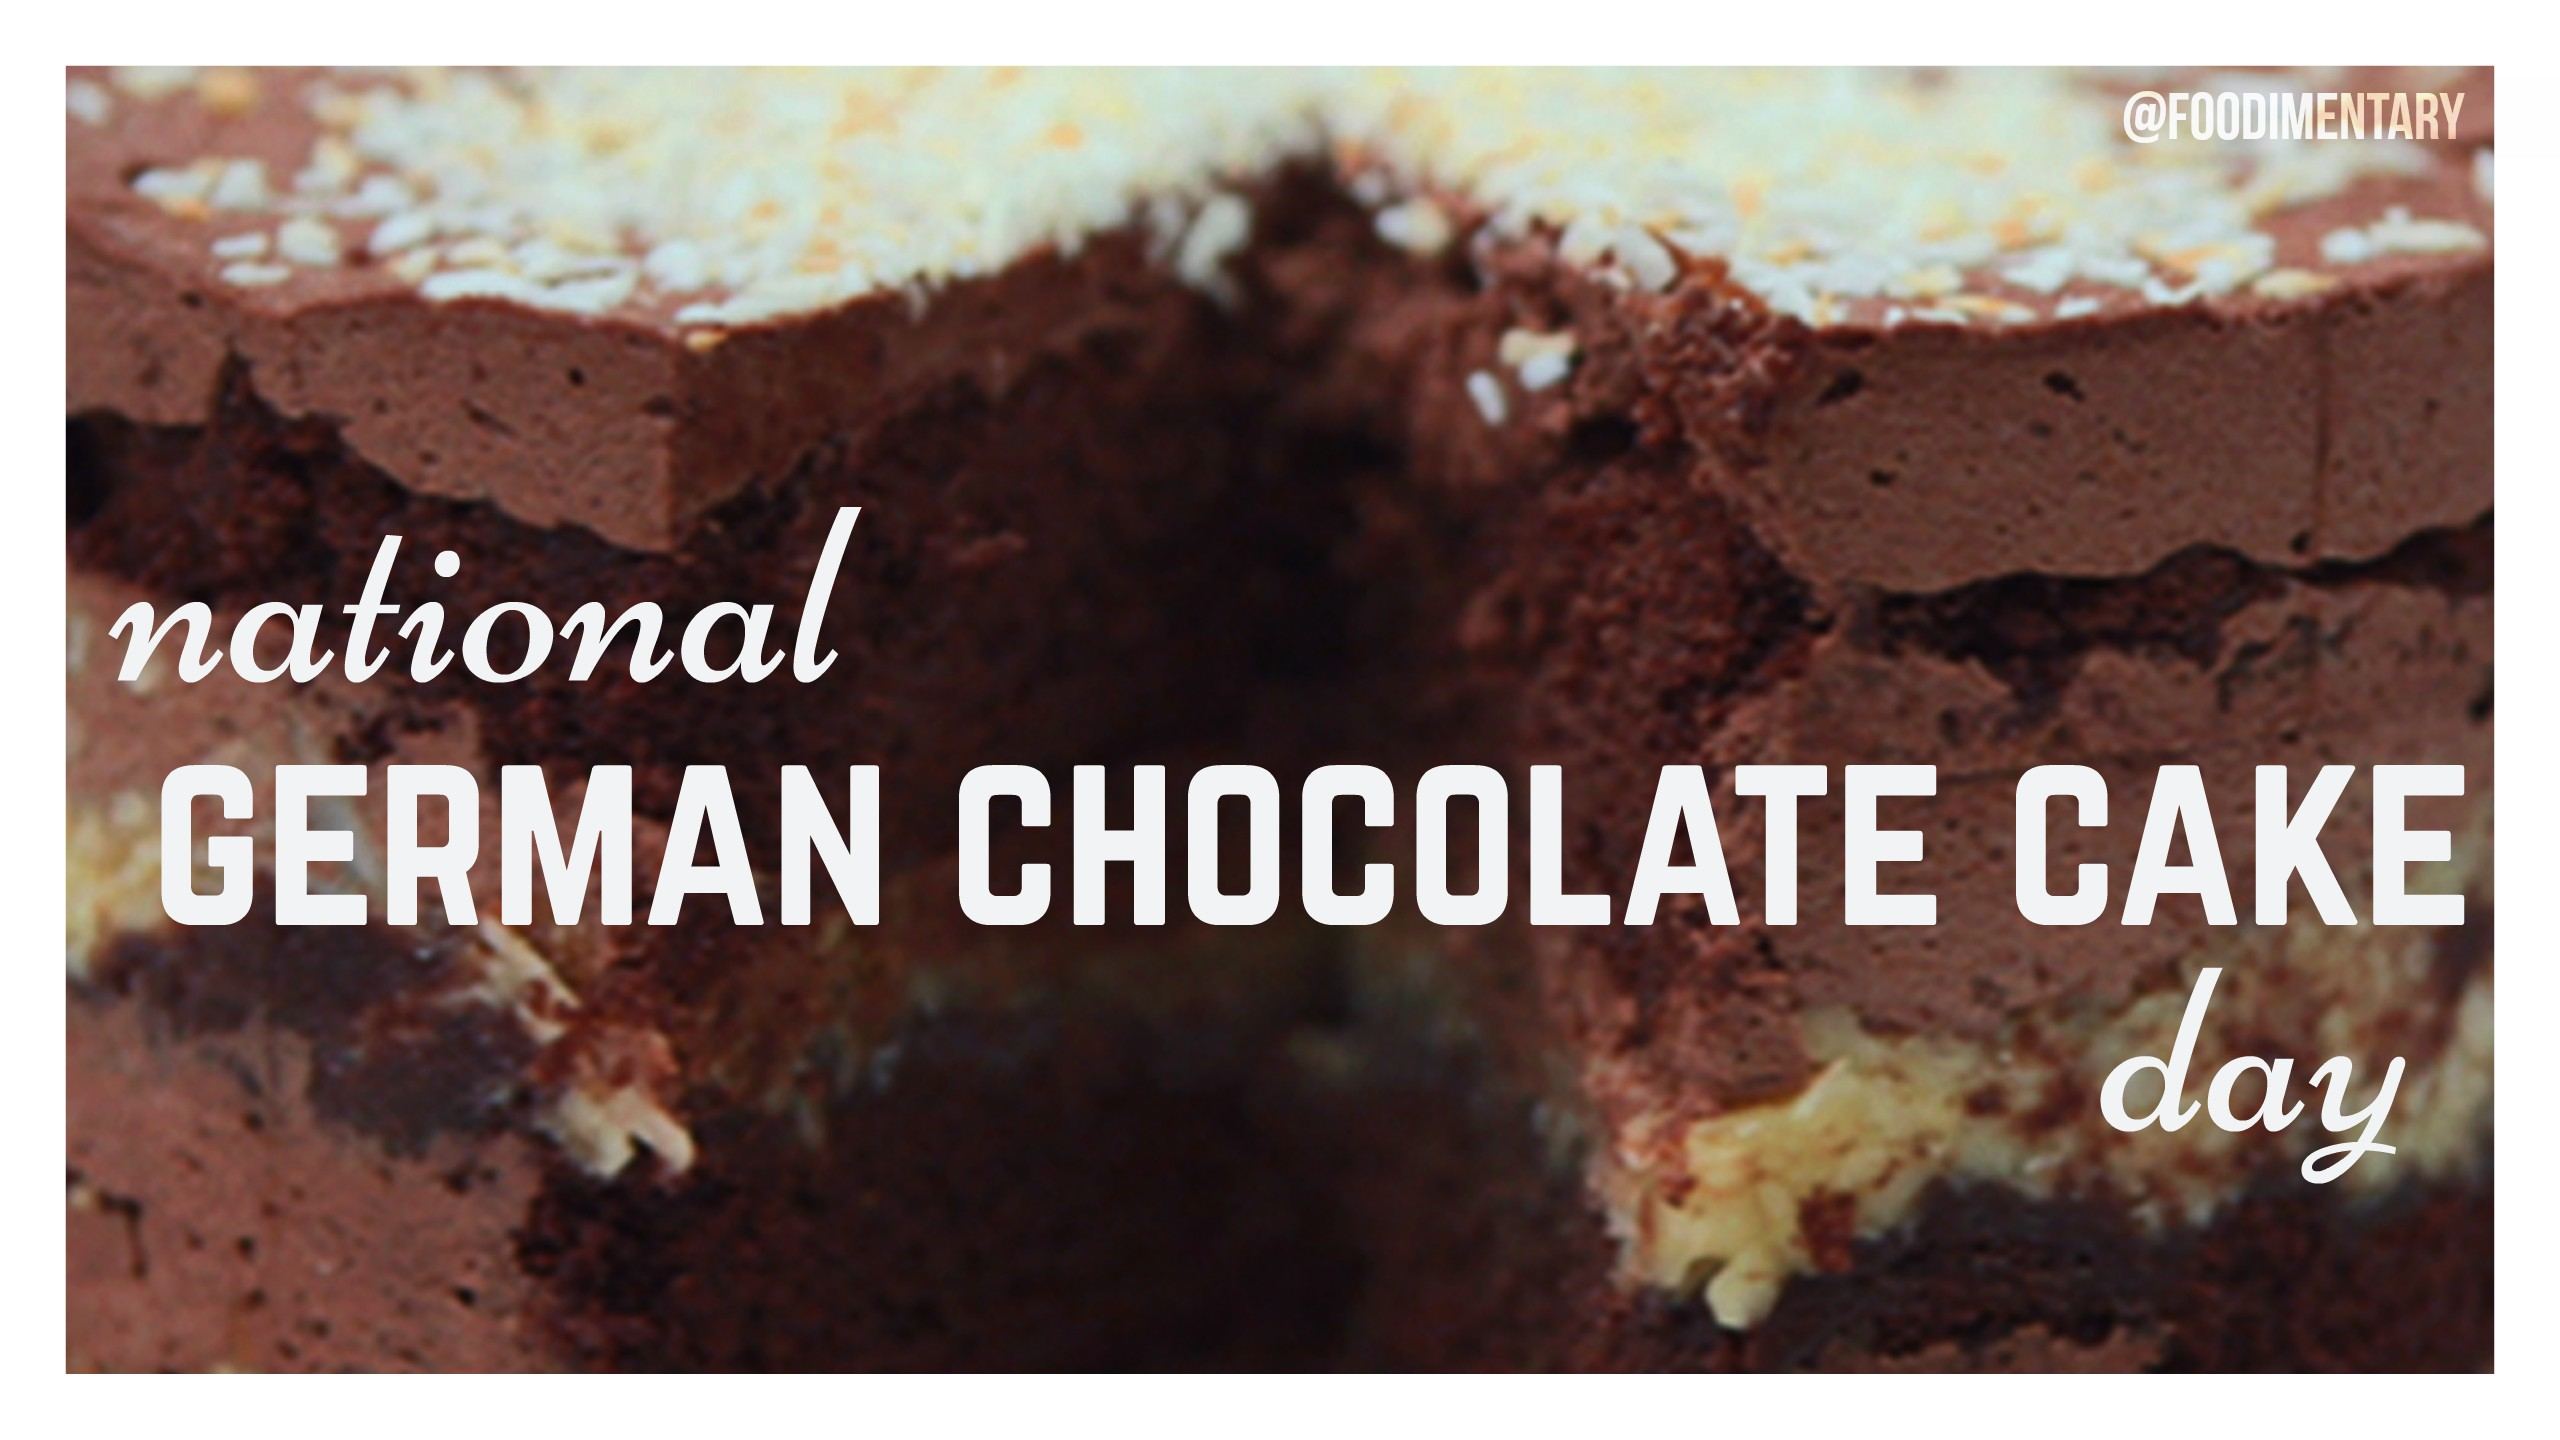 June 11th is National German Chocolate Cake Day | Foodimentary ...